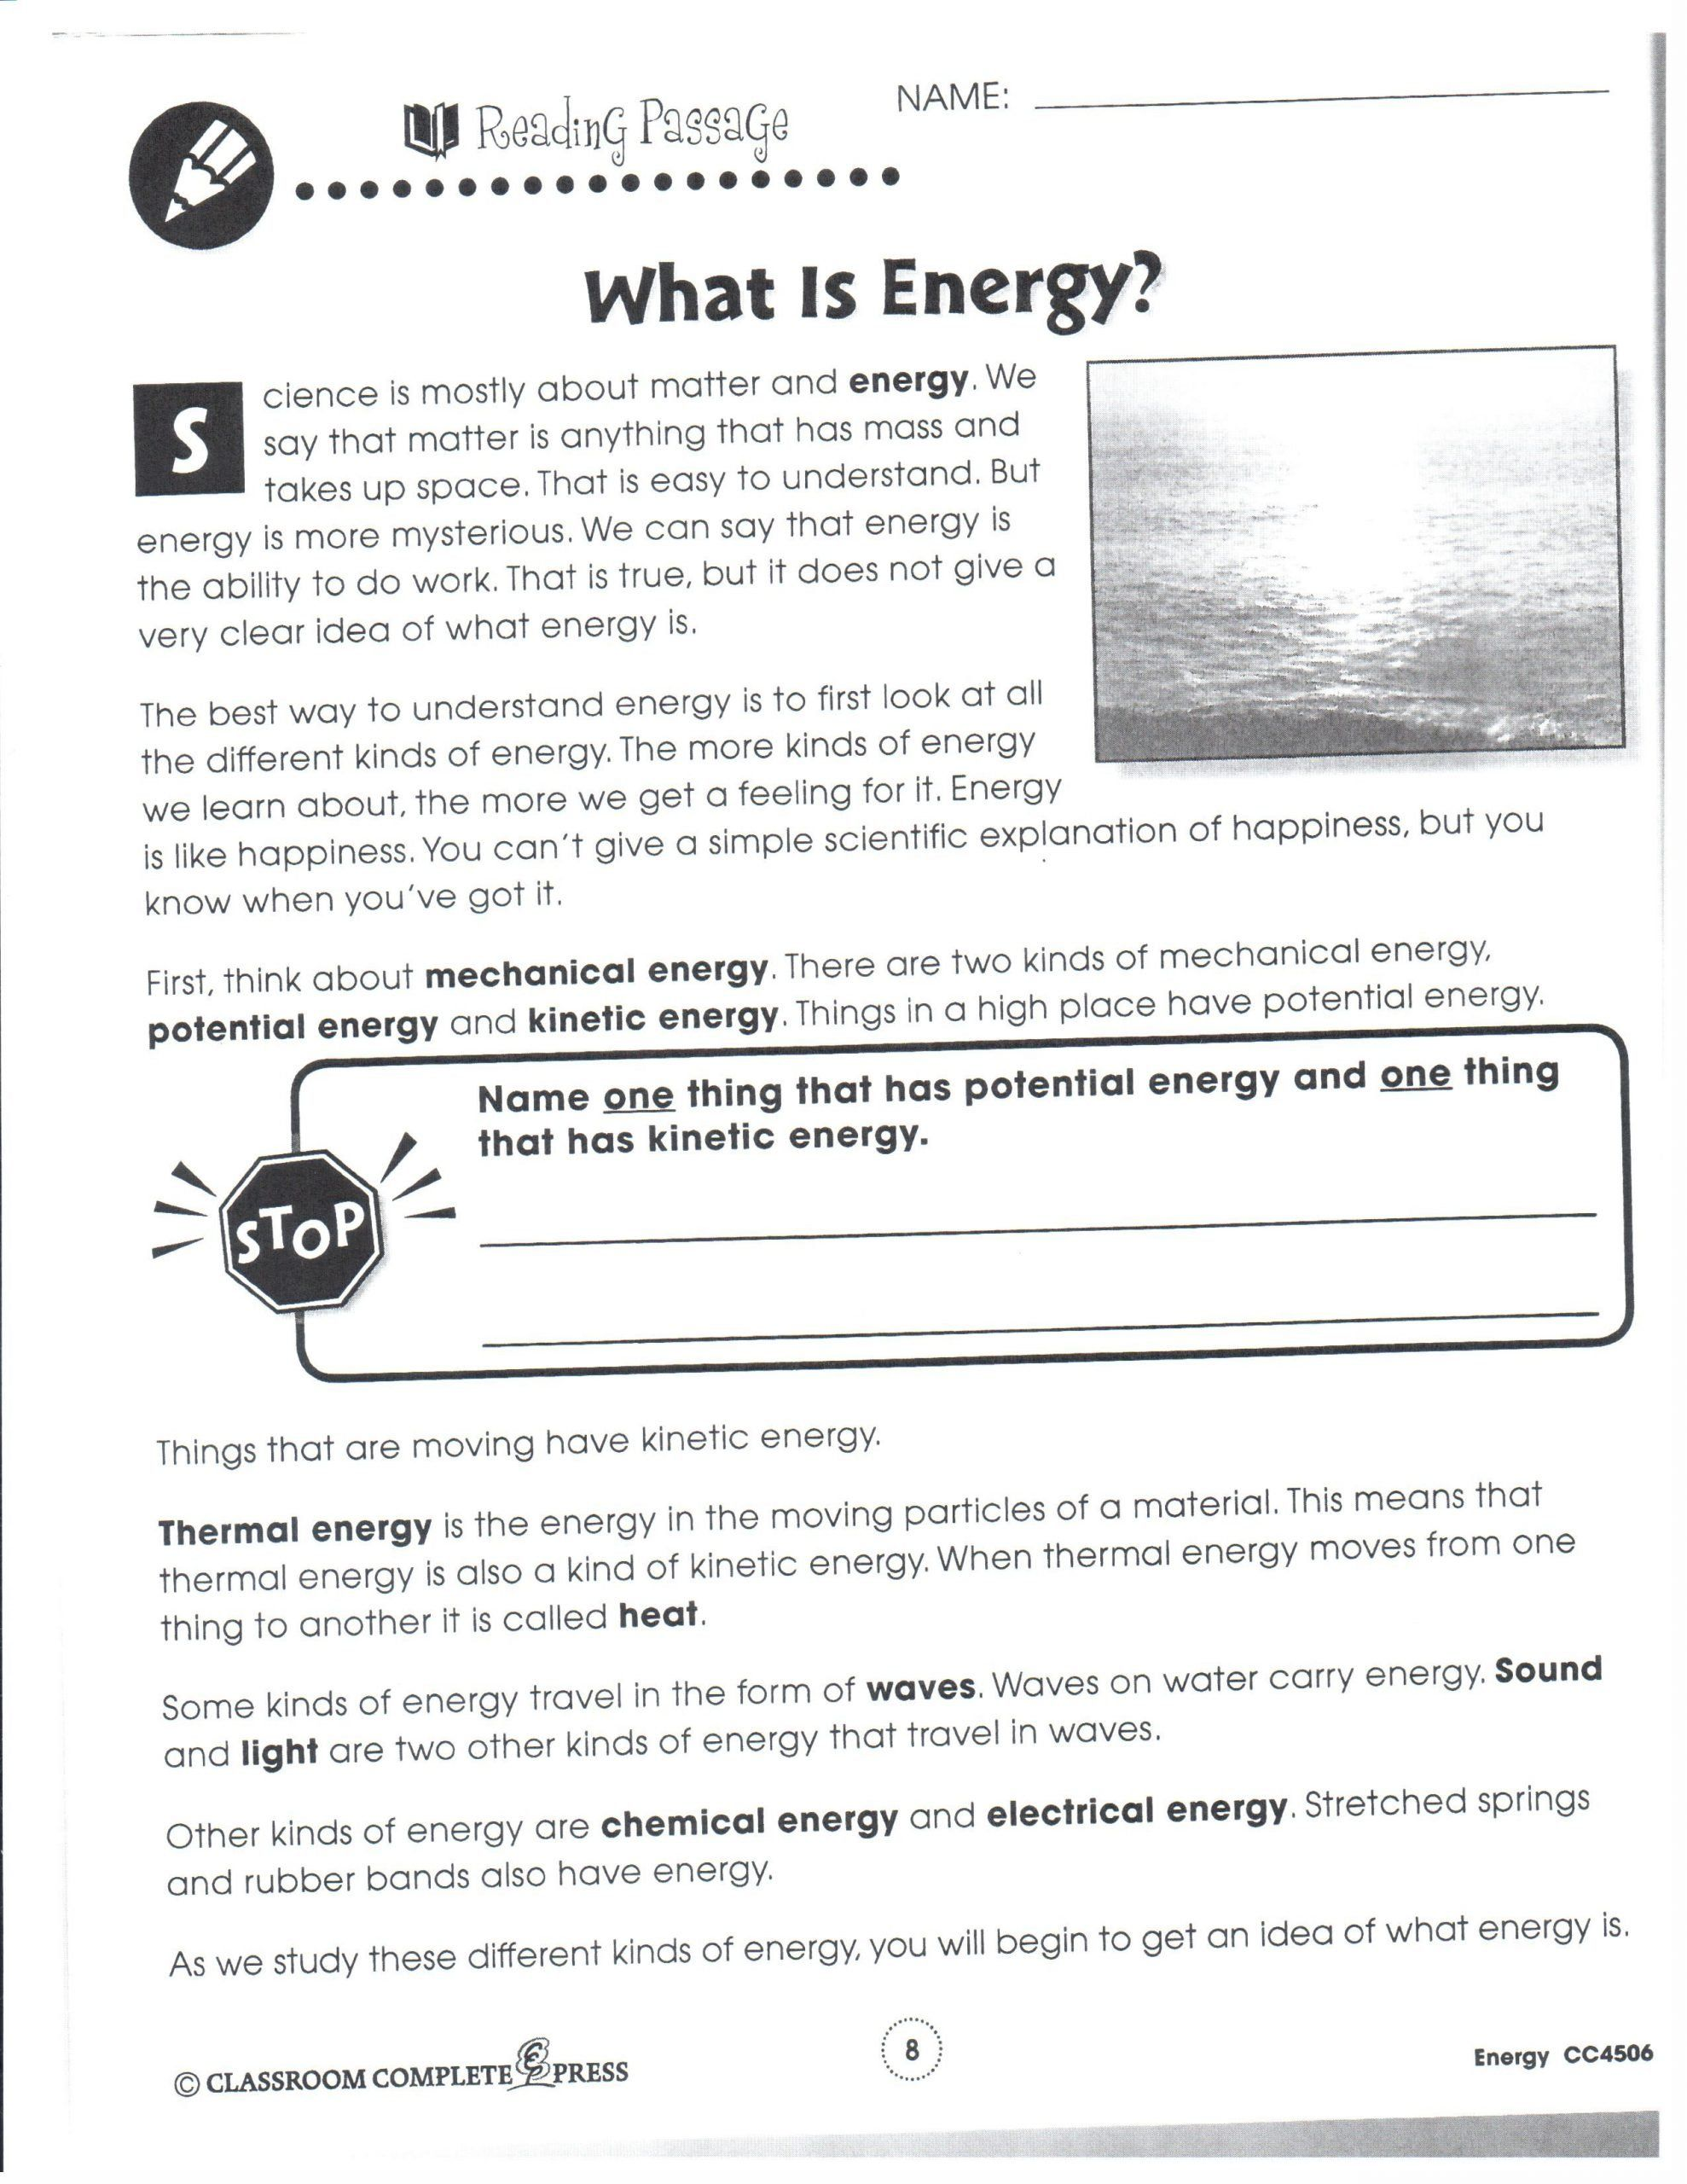 Physical Science Energy Worksheet Physical Science January 2013 Physical Science What Is Energy Reading Passages